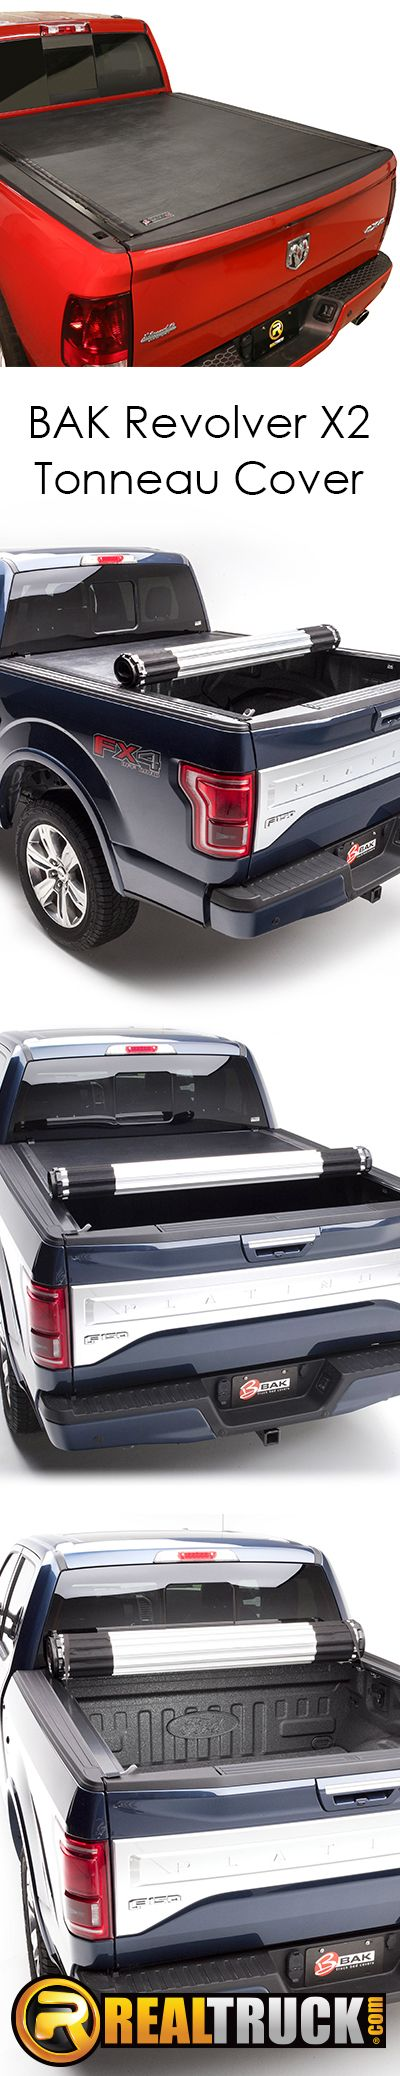 Whether you use your truck for work or for leisure, the BAK Revolver X2 tonneau cover has you covered. Being a hard cover, yet still having the ability to roll to your cab gives full bed access and is just what you need. BAK pulled out all the bells and whistles on this truck bed cover as it is constructed from high-quality materials and built for security.